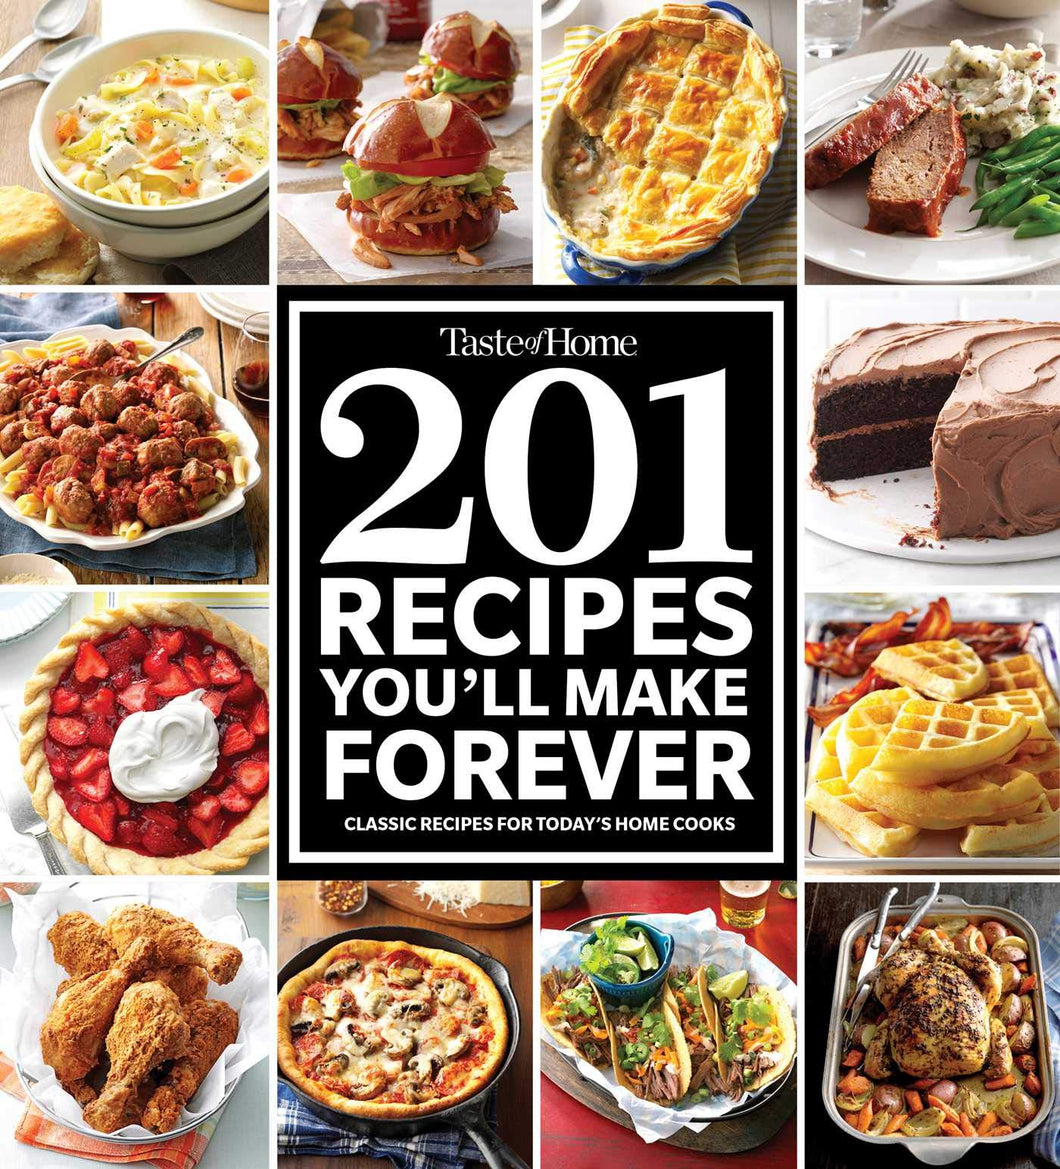 Taste of Home 201 Recipes You'll Make Forever: Classic Recipes for Today's Home Cooks - Tolerant Planet